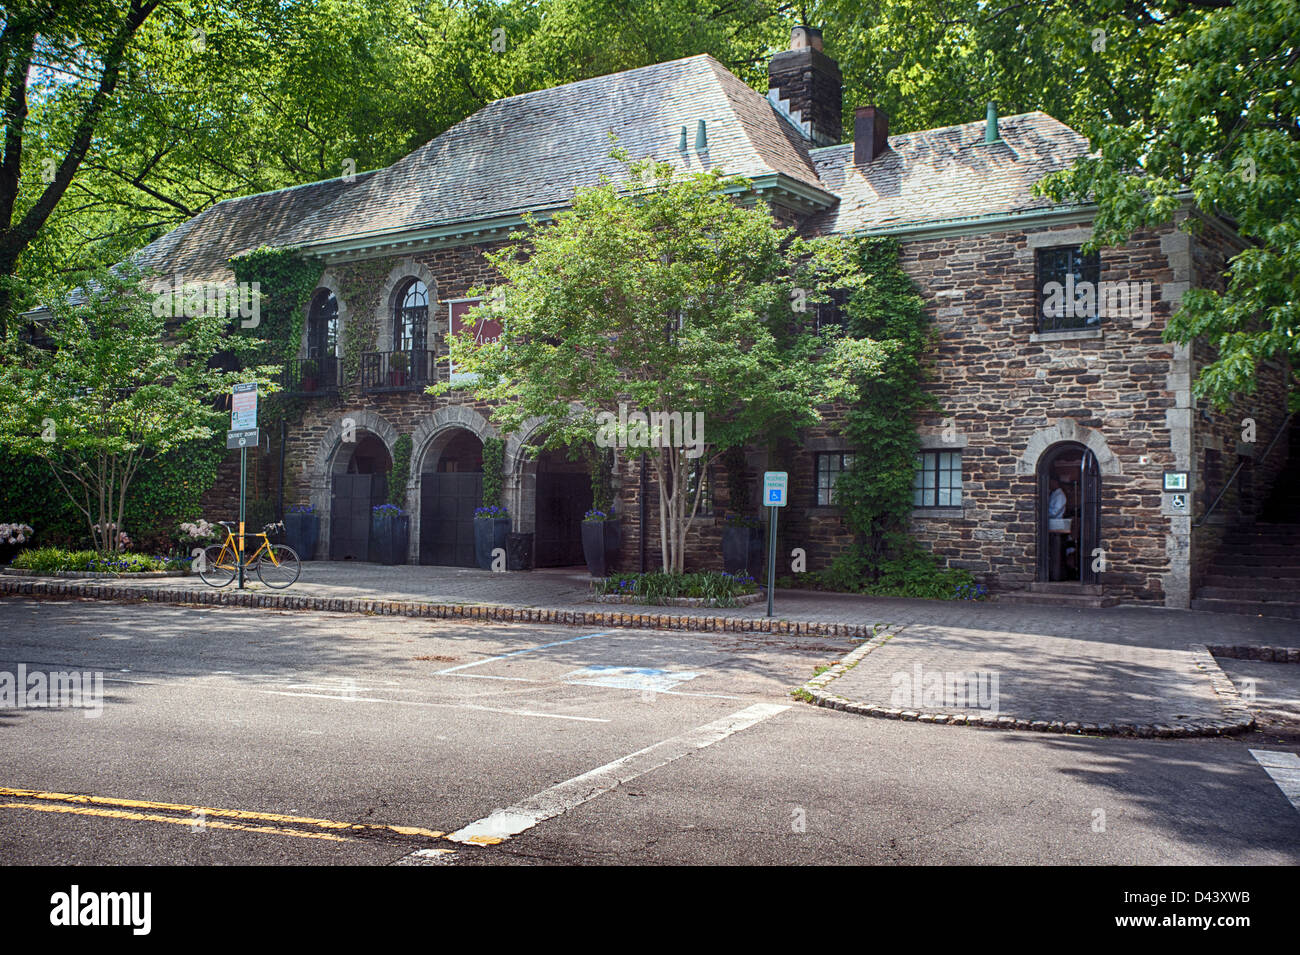 Restaurant Near The Cloisters In Fort Tryon Park New York